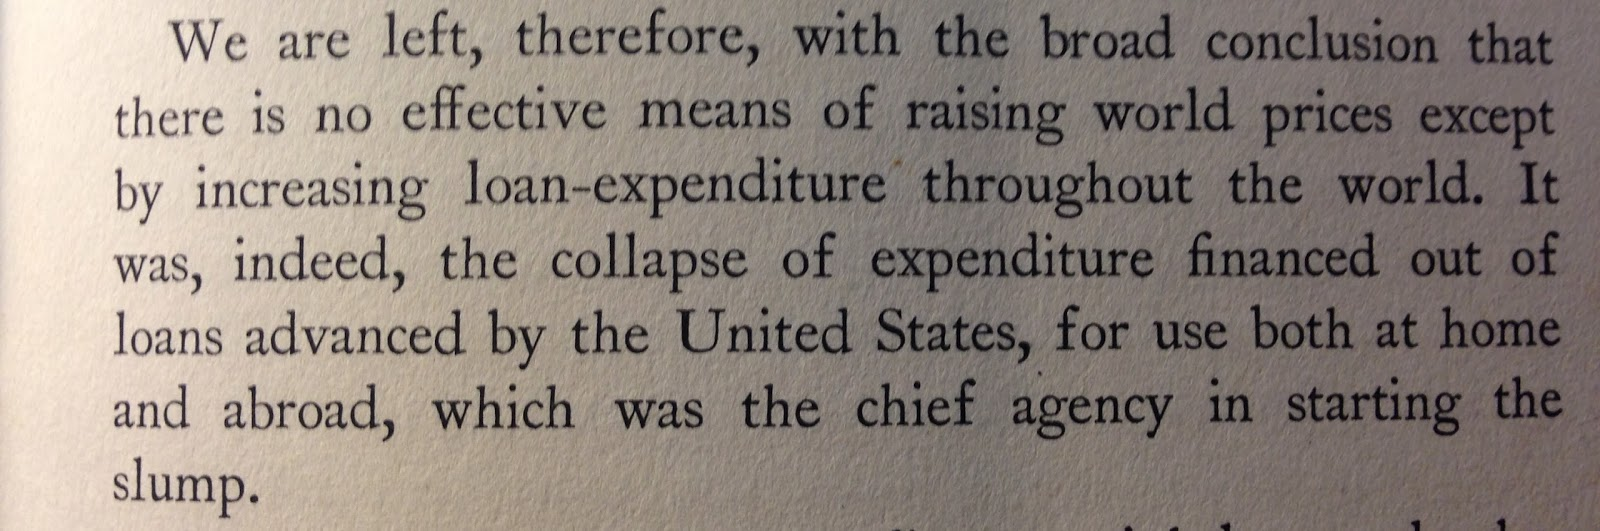 keynes on the causes of the great depression note that he clearly suggests that the global crisis had its epicenter in the us also even though he is concerned the role of expenditure in the